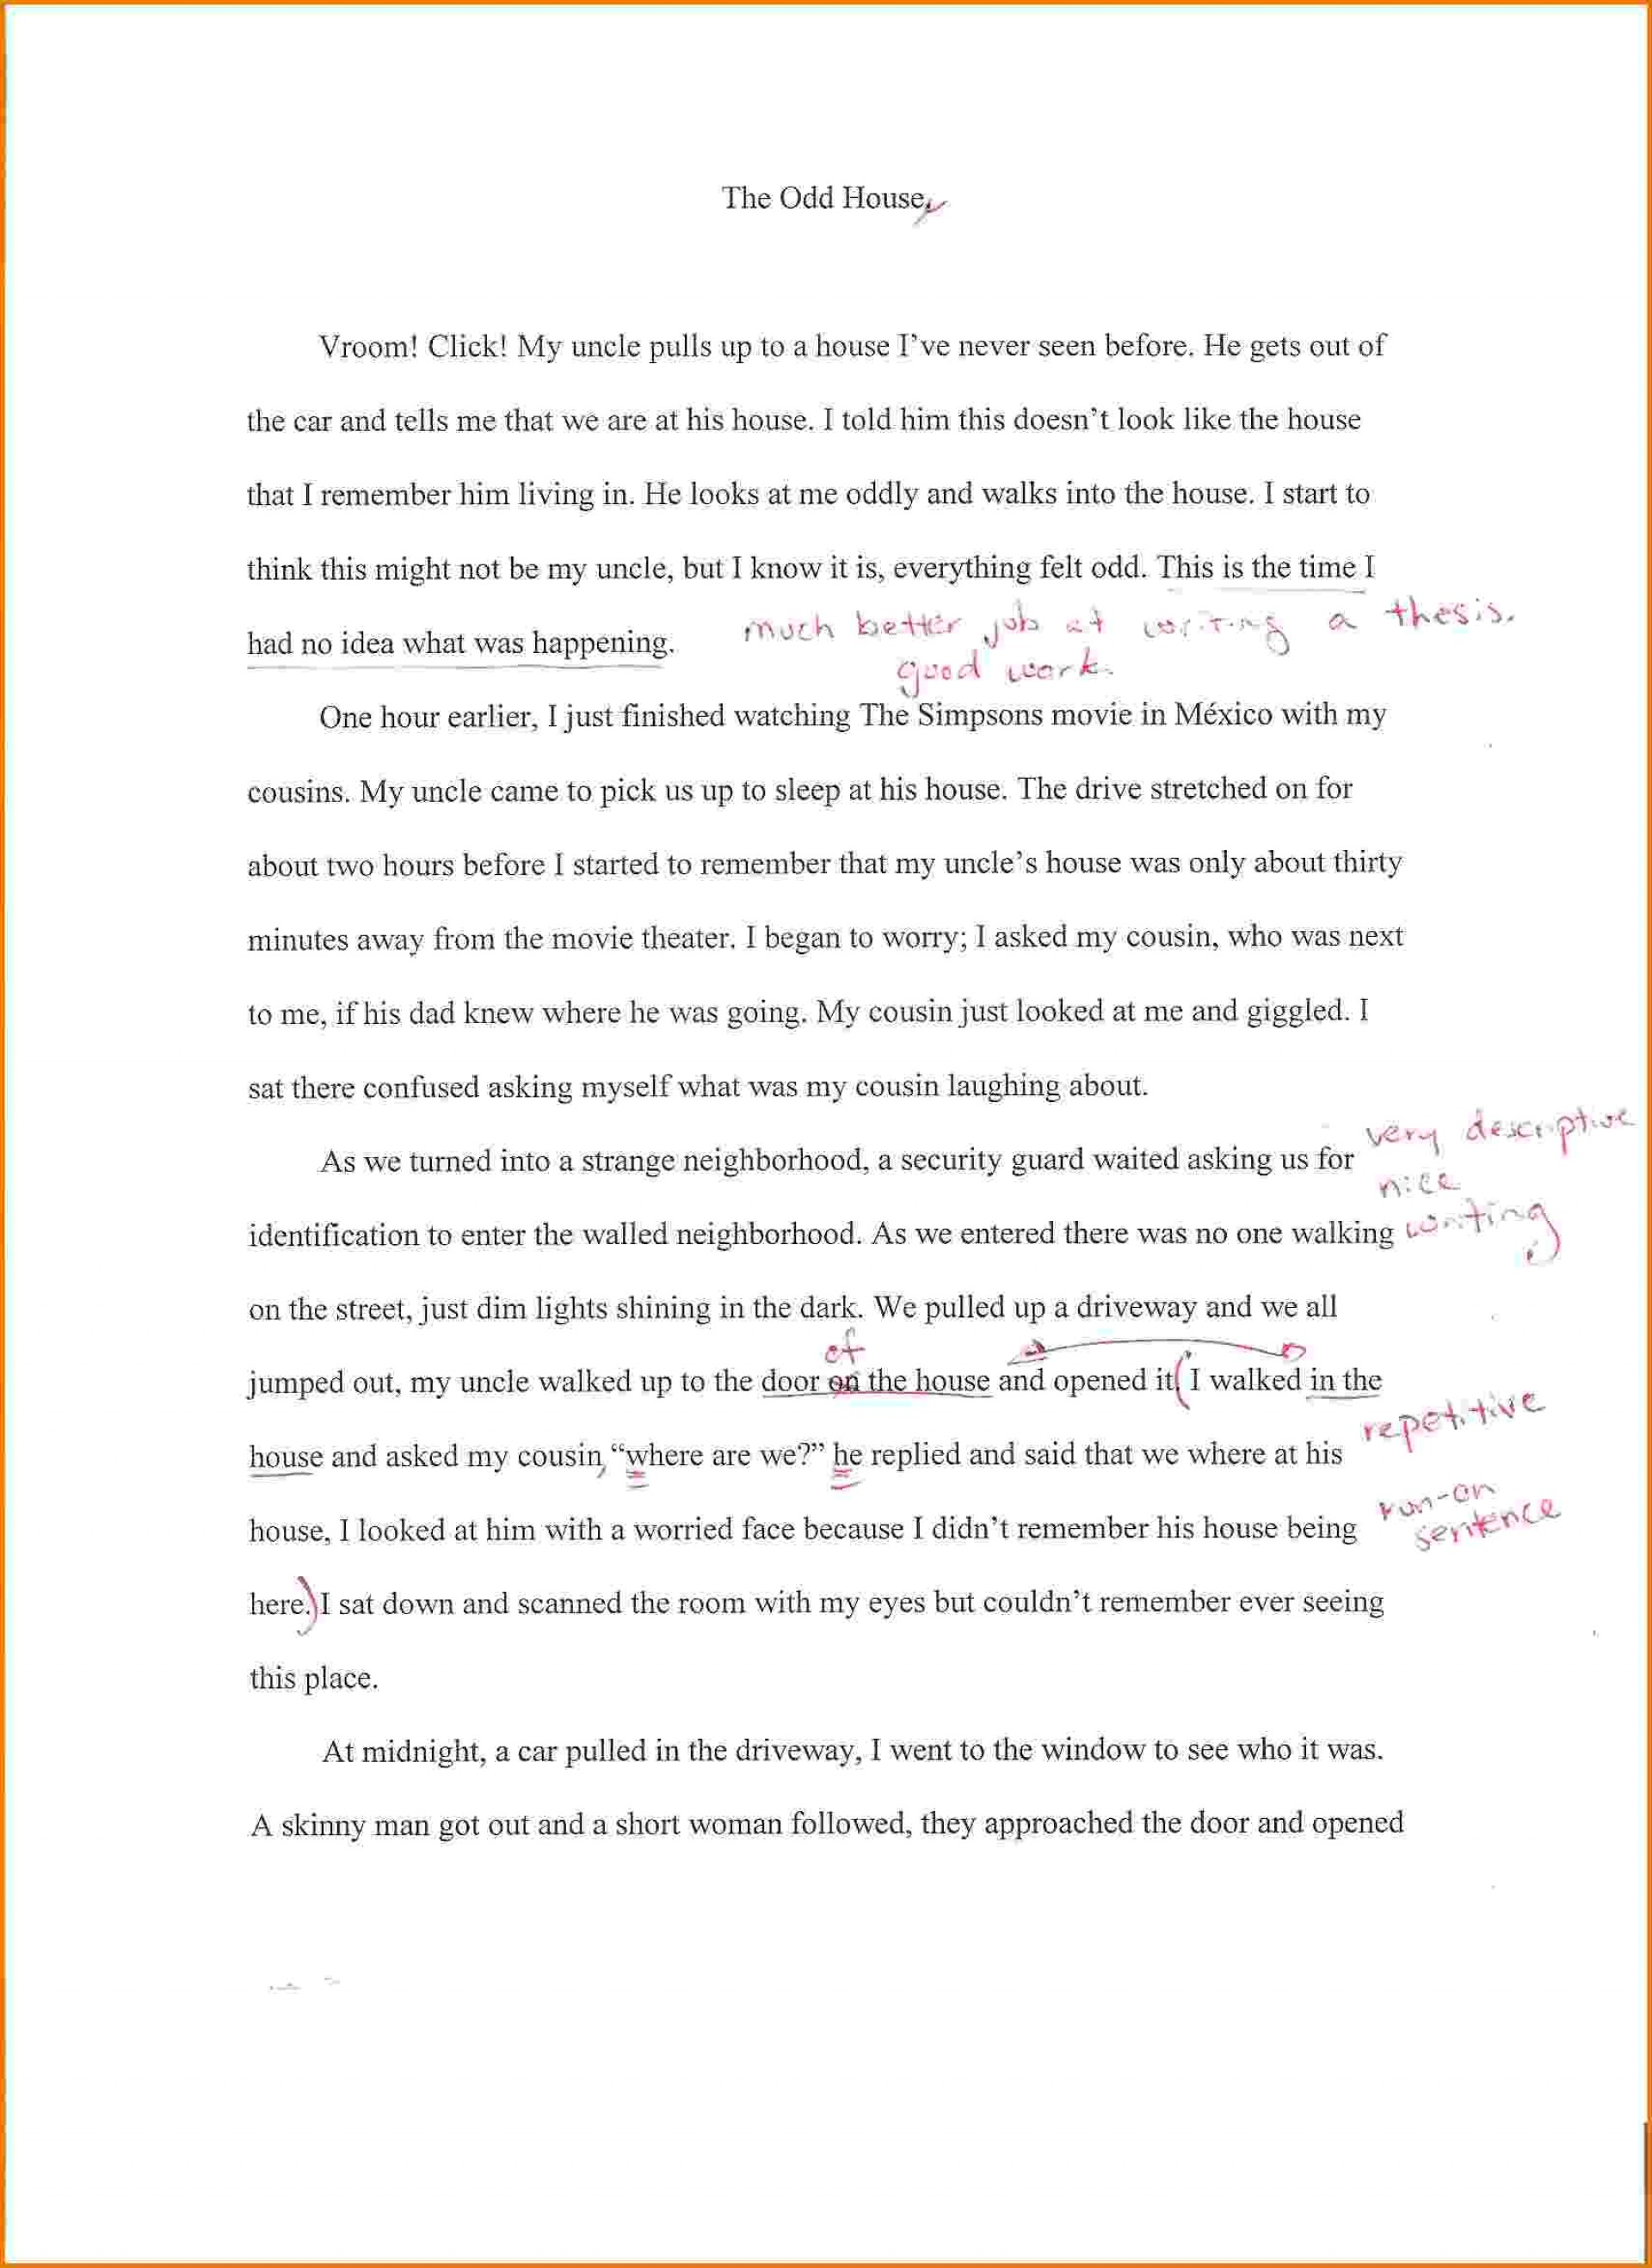 017 Autobiography Essay About Myself Family Background Example Autobiographysample2 Awful Of Yourself Pdf Tagalog 1920